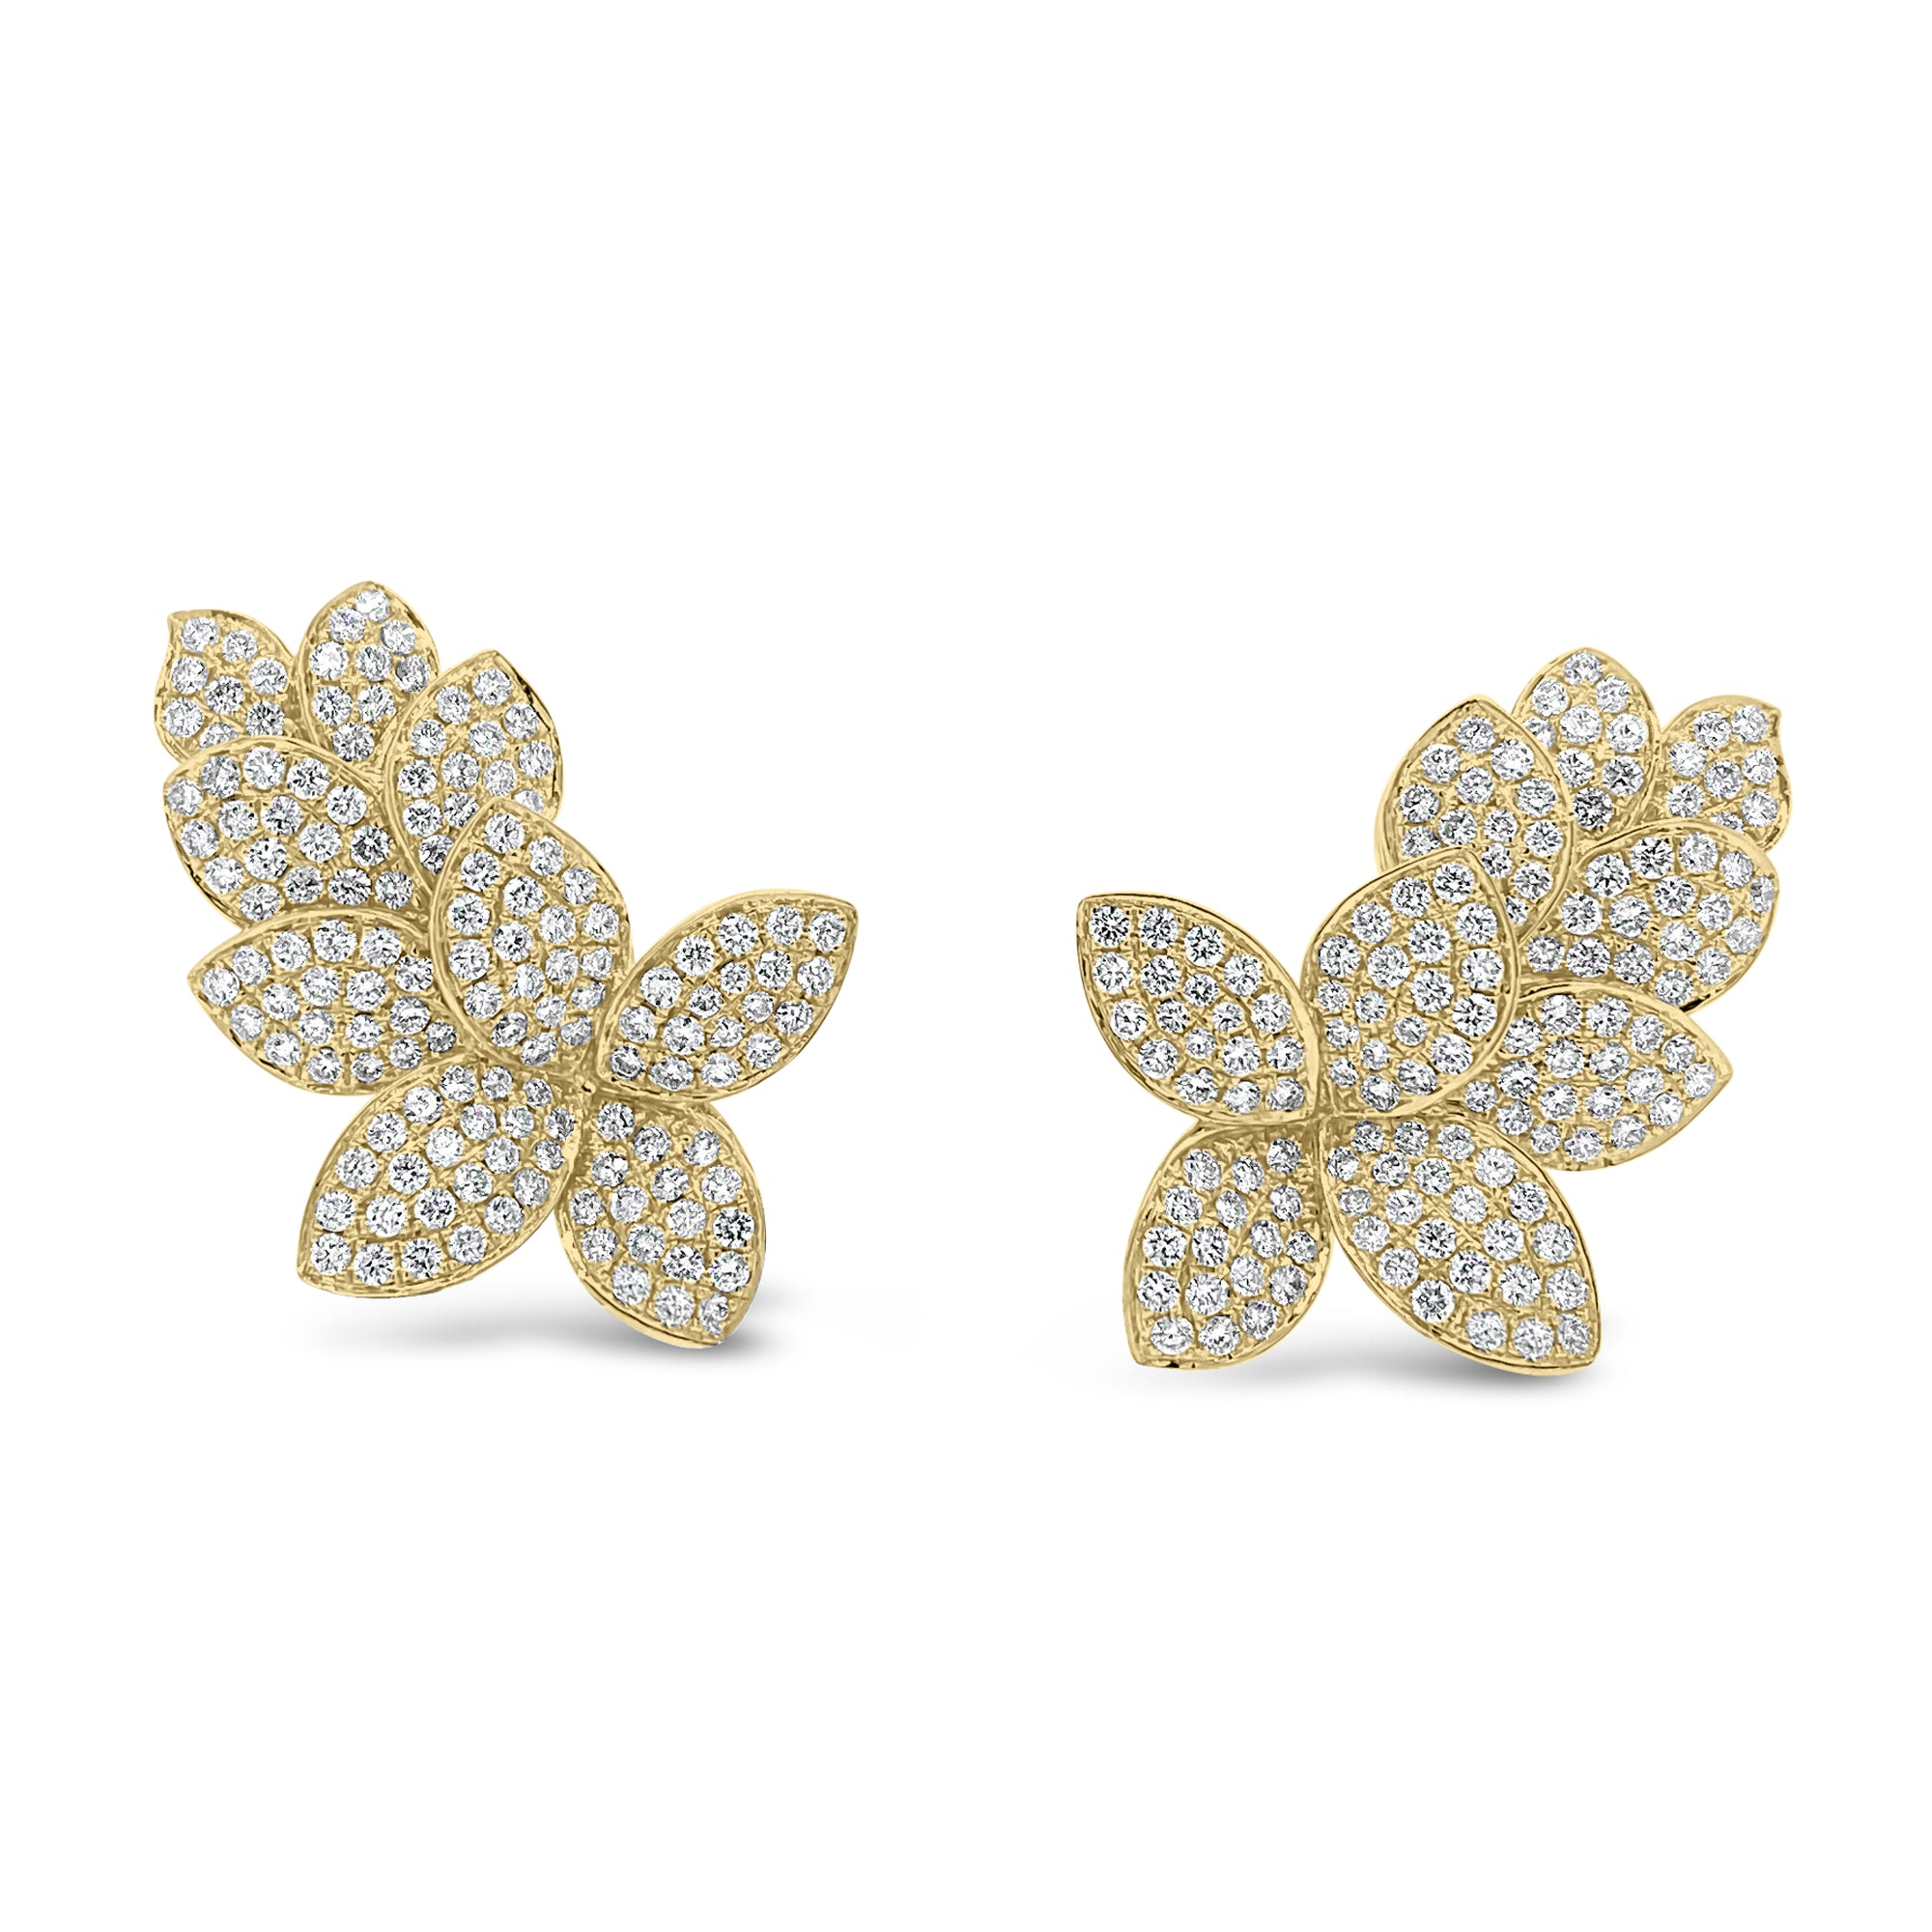 Diamond Ornate Flower Crawler Earrings